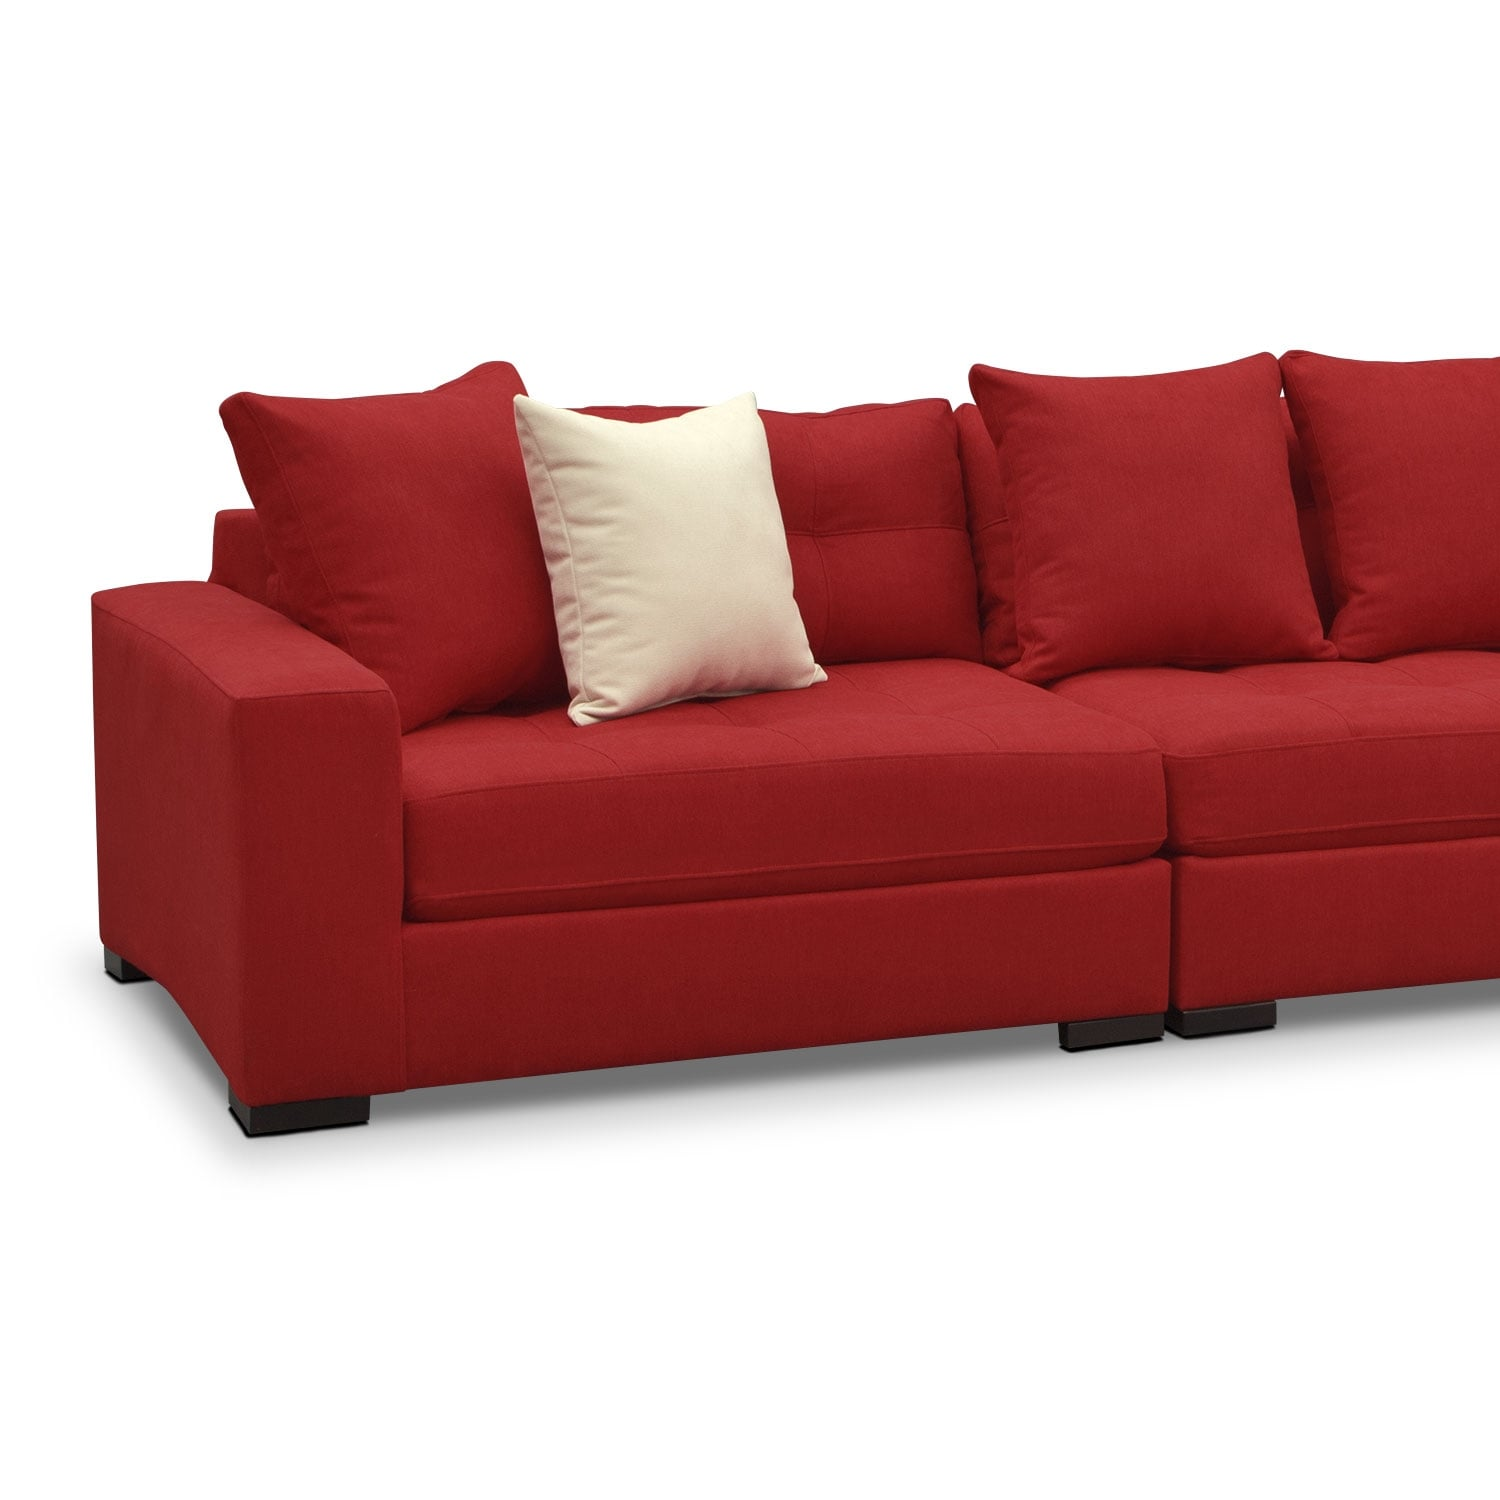 Venti 3 piece sectional red american signature furniture for American signature couch